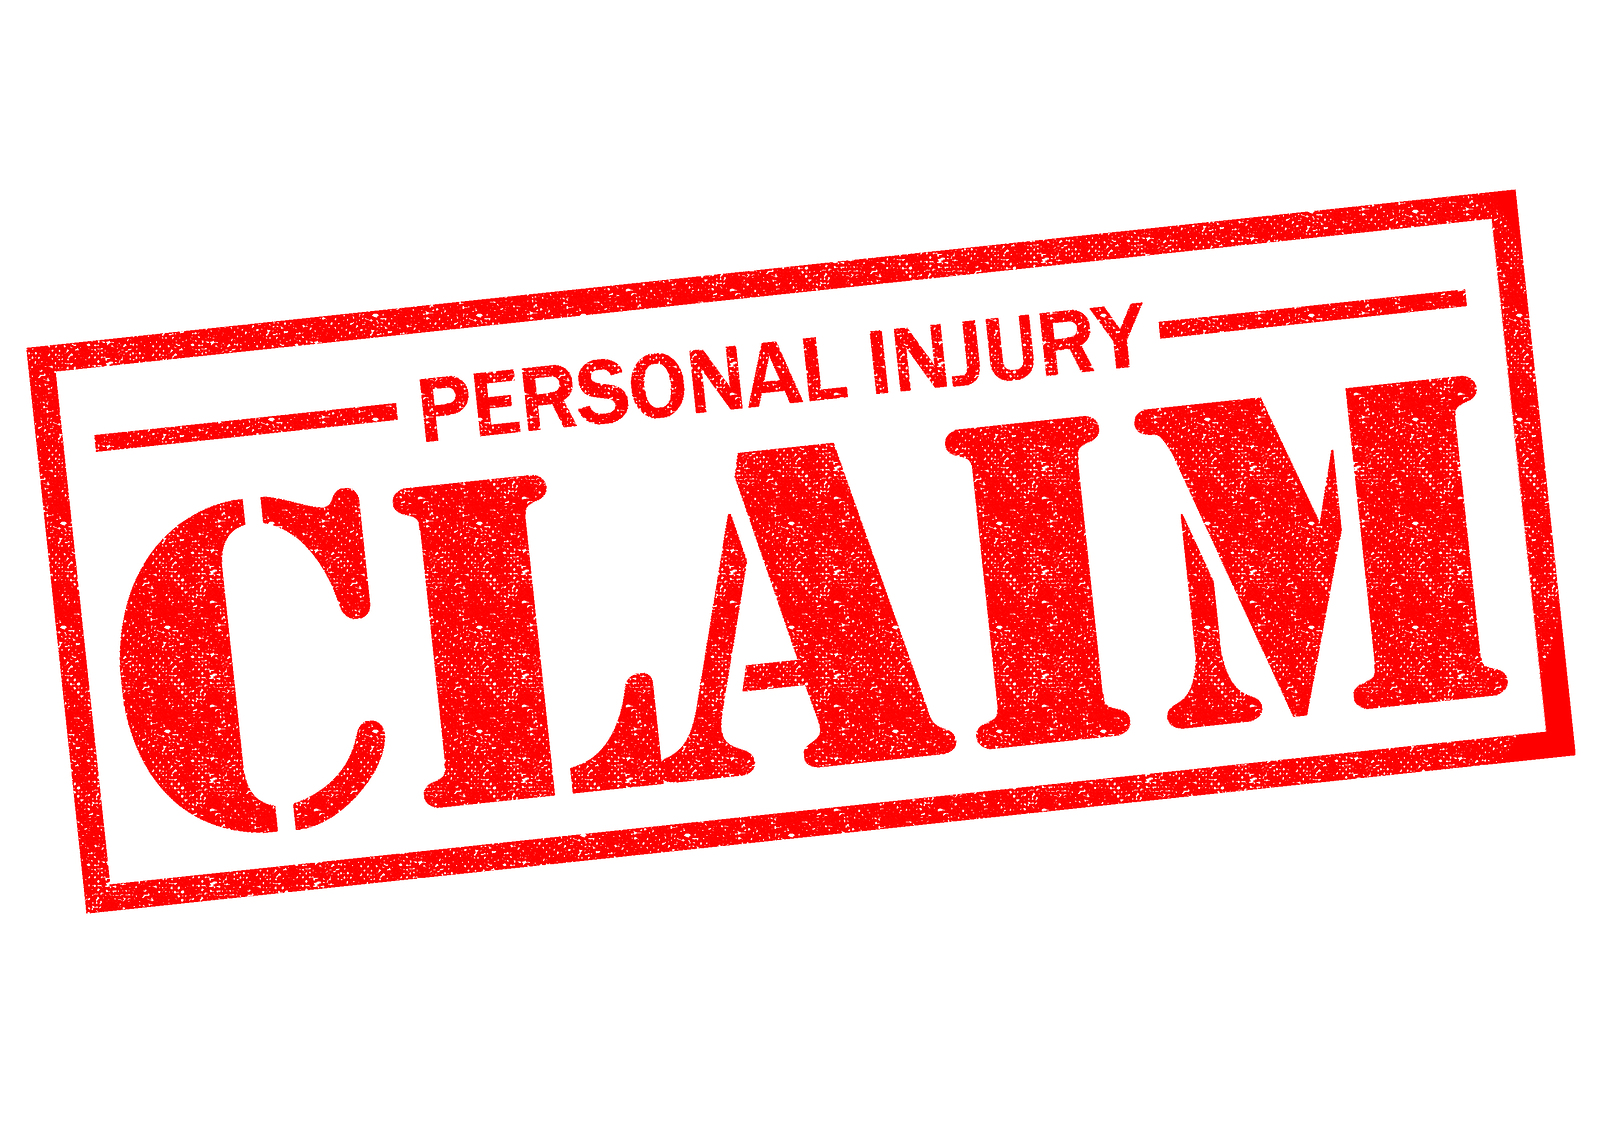 Major Ways To Protect Your Personal Injury Interests